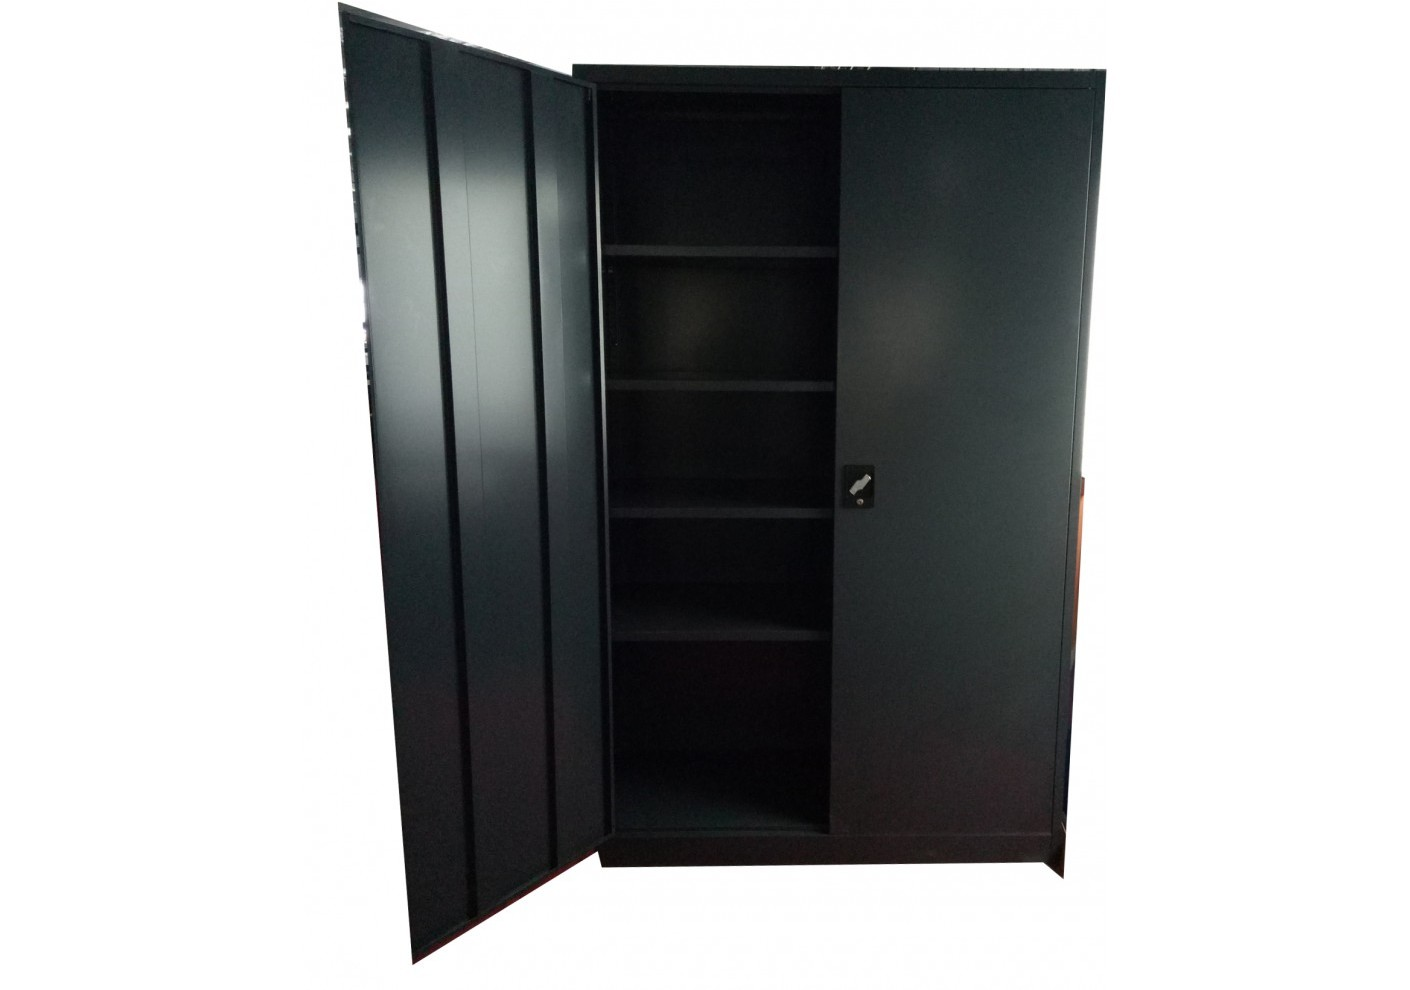 Armoire 2 portes m tallique coloris anthracite ar2pb 195 for Armoire metallique 2 portes